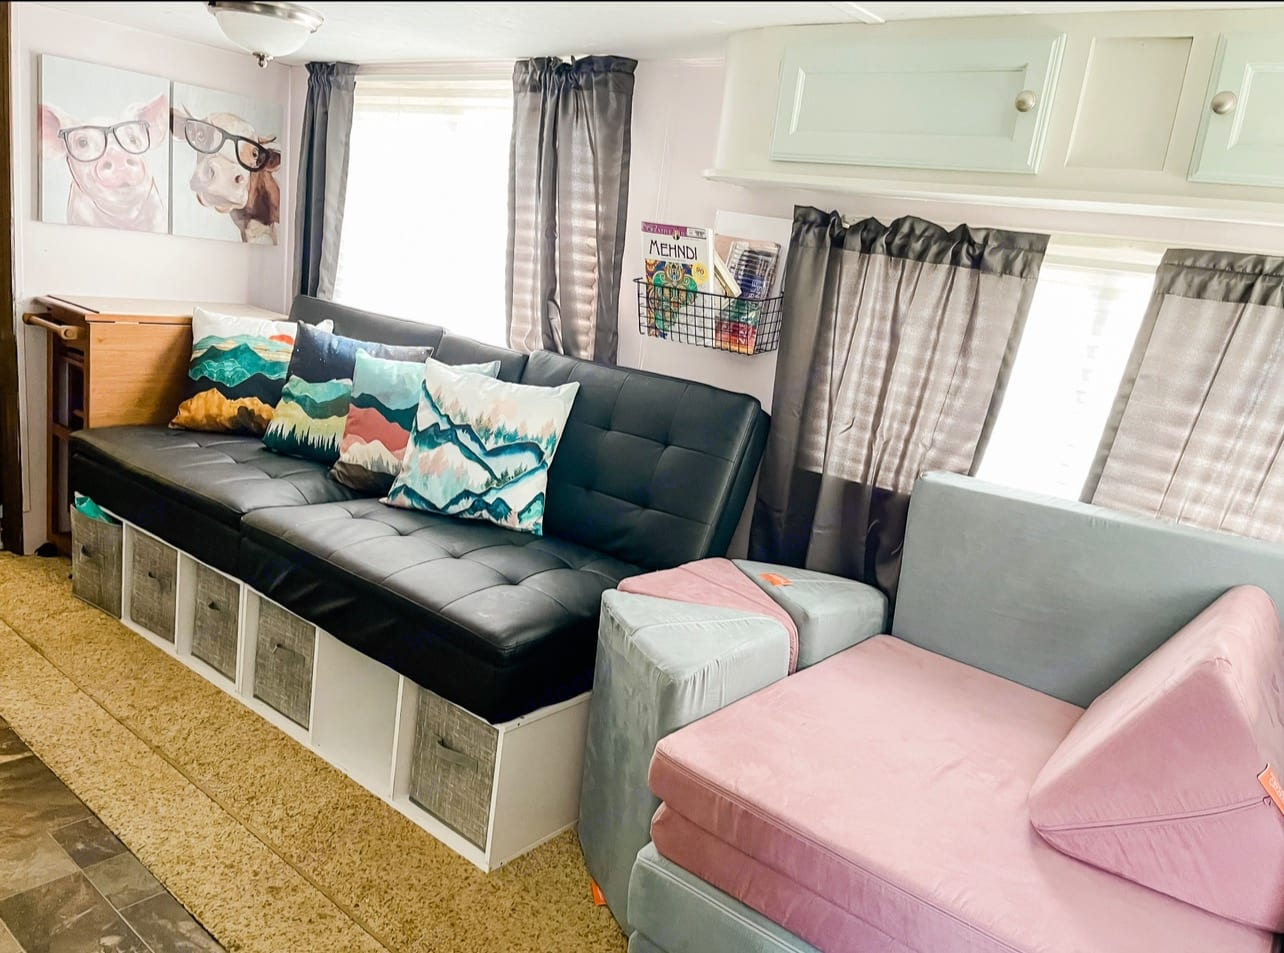 colors of couches may change based on season and dates. We have multiple covers to make changes easy.. Venture Rv Sporttrek 2015